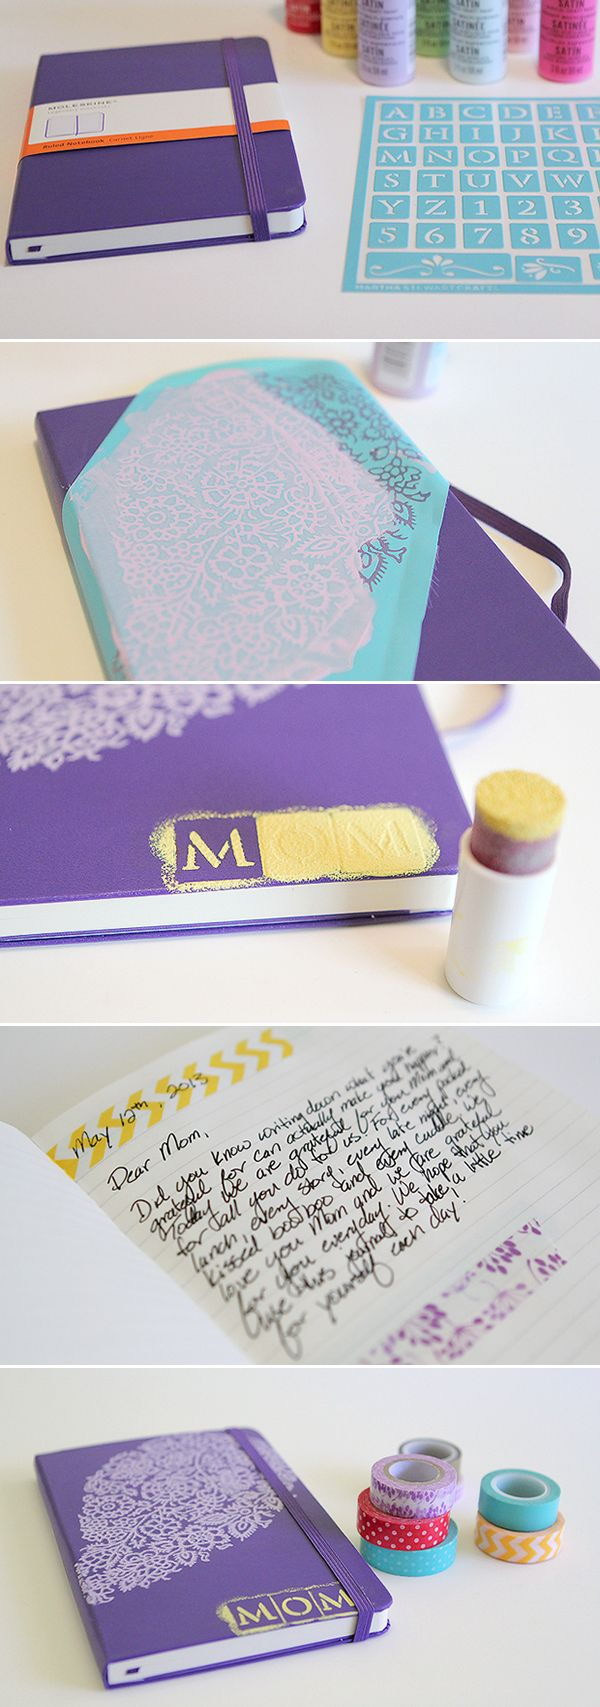 DIY Mother Gifts  20 Heartfelt DIY Gifts for Mom Noted List